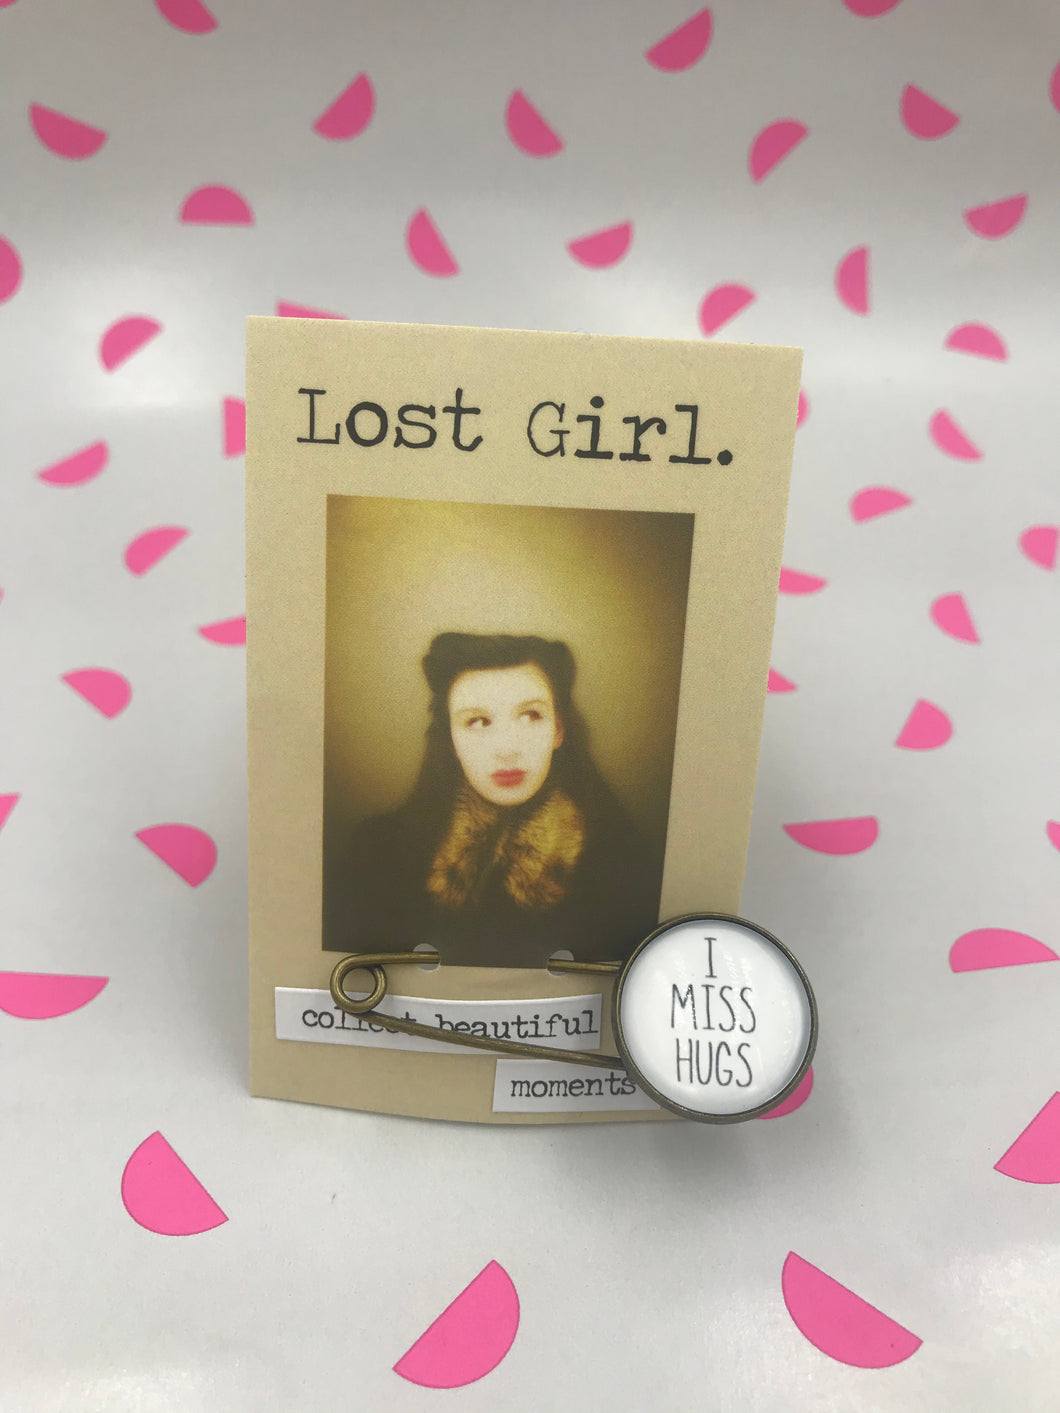 Lost Girl Pins - I Miss Hugs